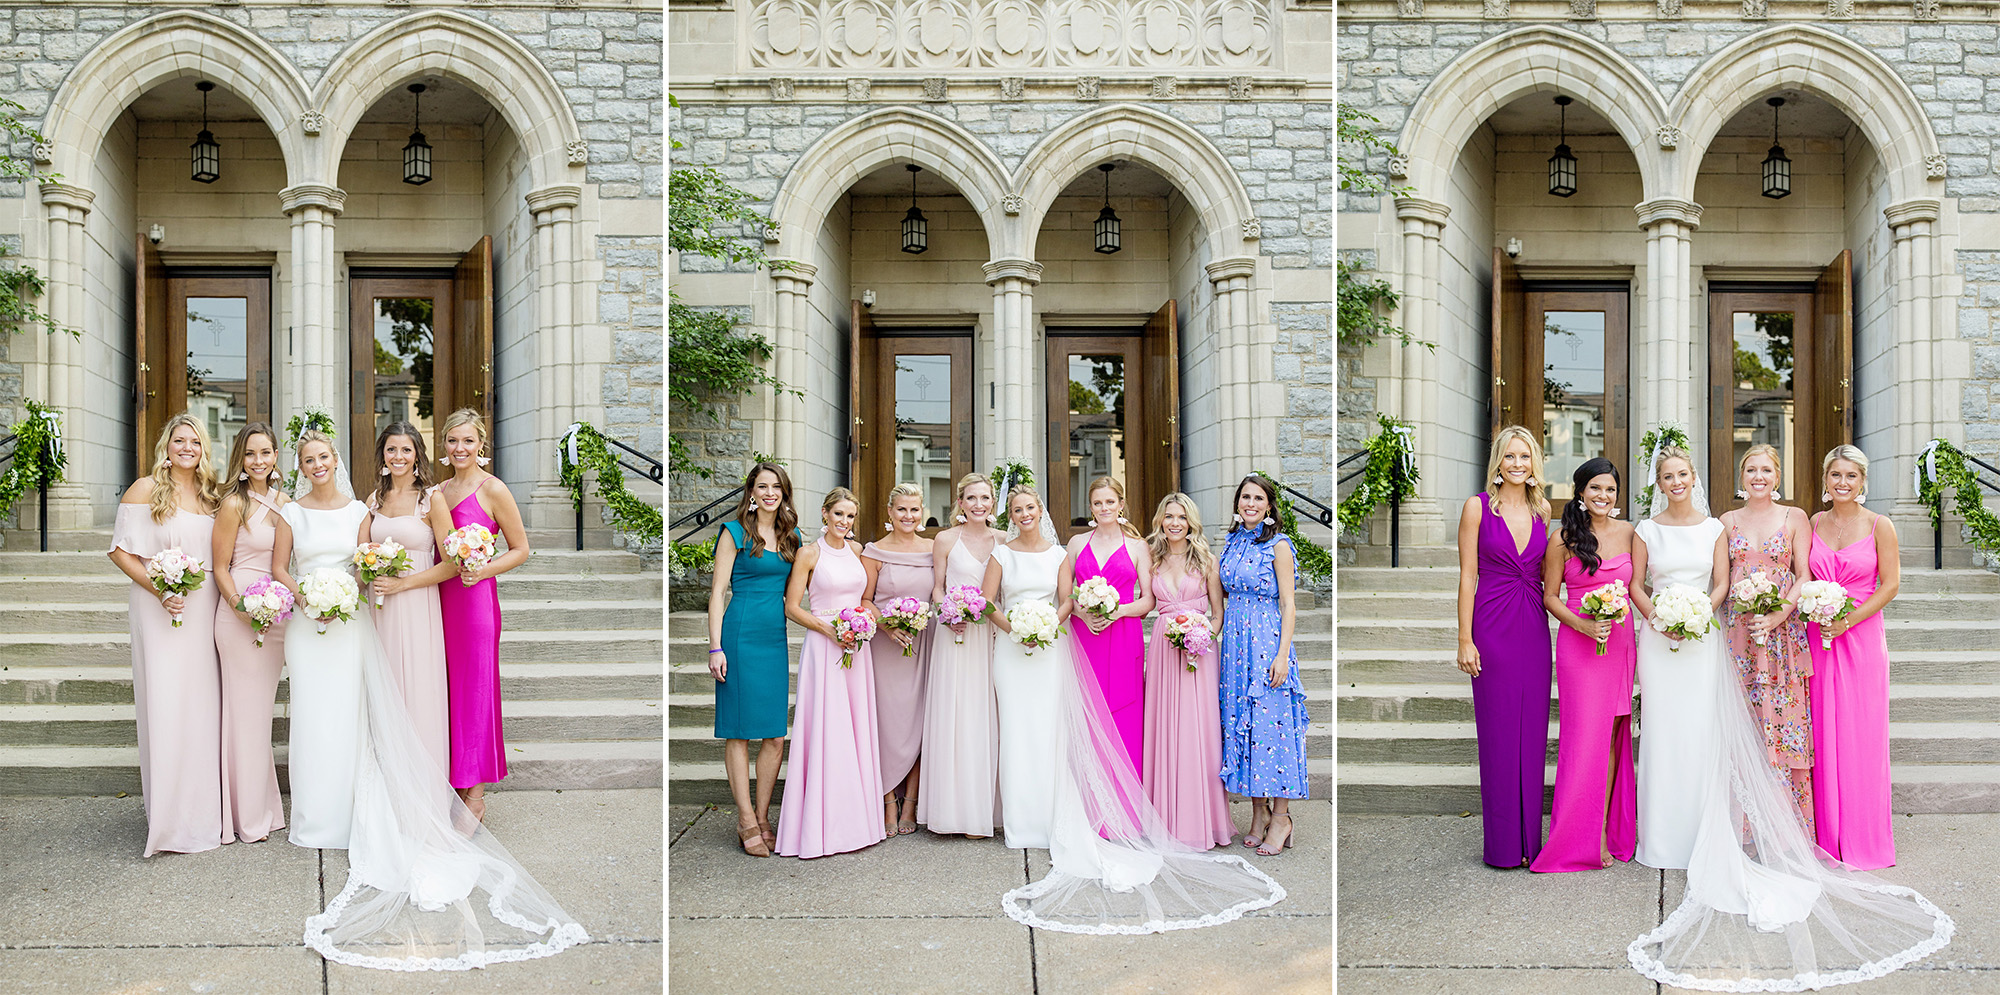 Seriously_Sabrina_Photography_Lexington_Kentucky_Second_Presbyterian_Church_Idle_Hour_Country_Club_Wedding_Kime_30.jpg